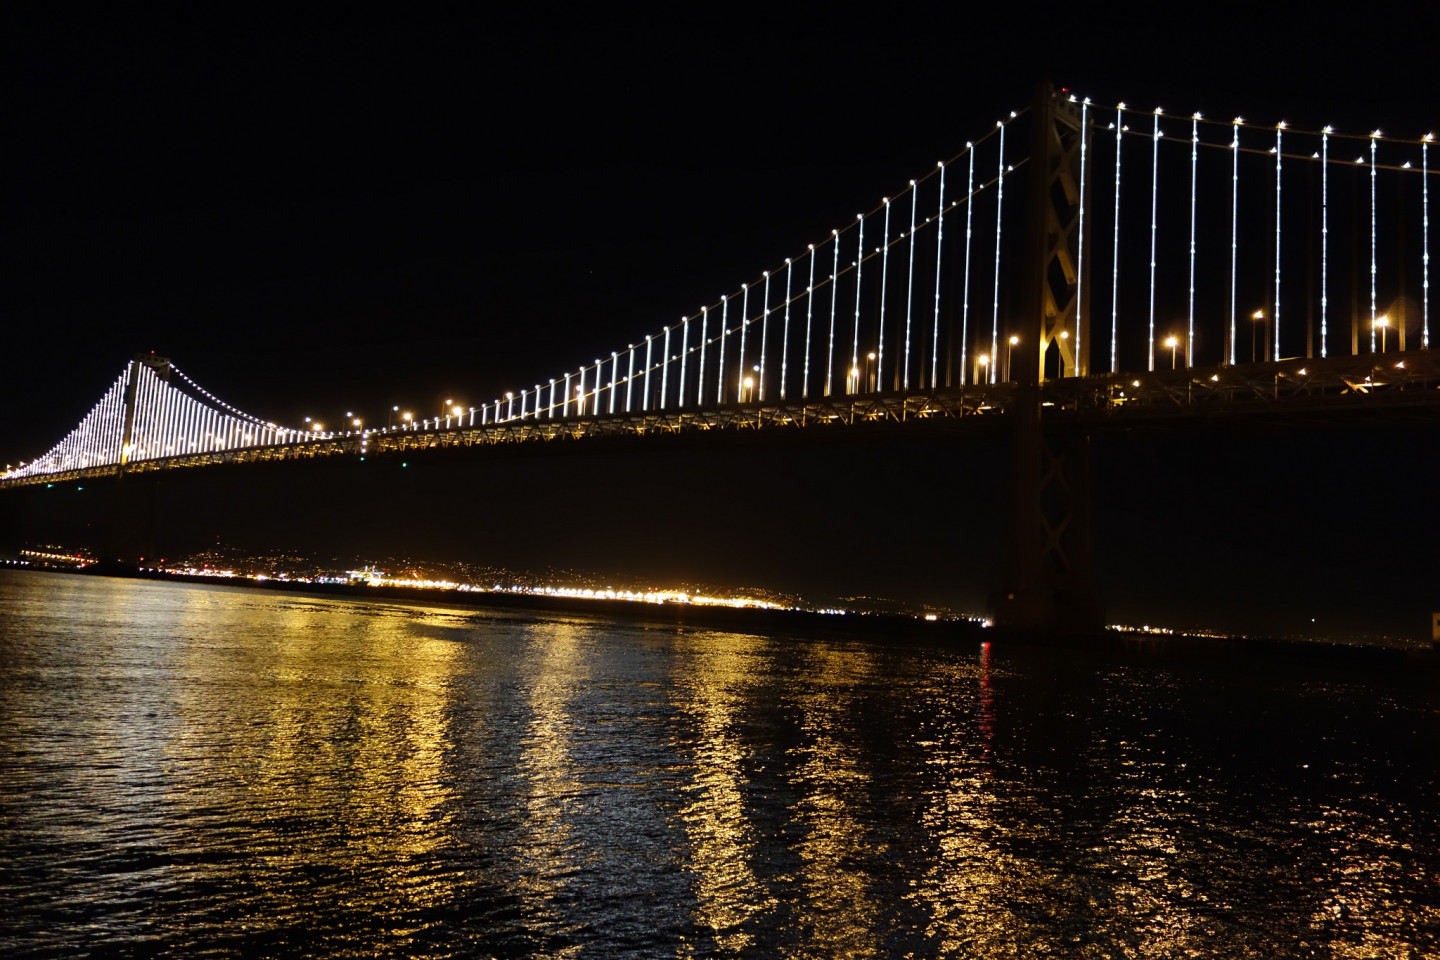 """""""I believe my work will allow people to see this iconic piece of infrastructure in a new way,"""" artist Leo Villareal  told Bay Area Bites. (Steve Rhodes/Flickr)"""